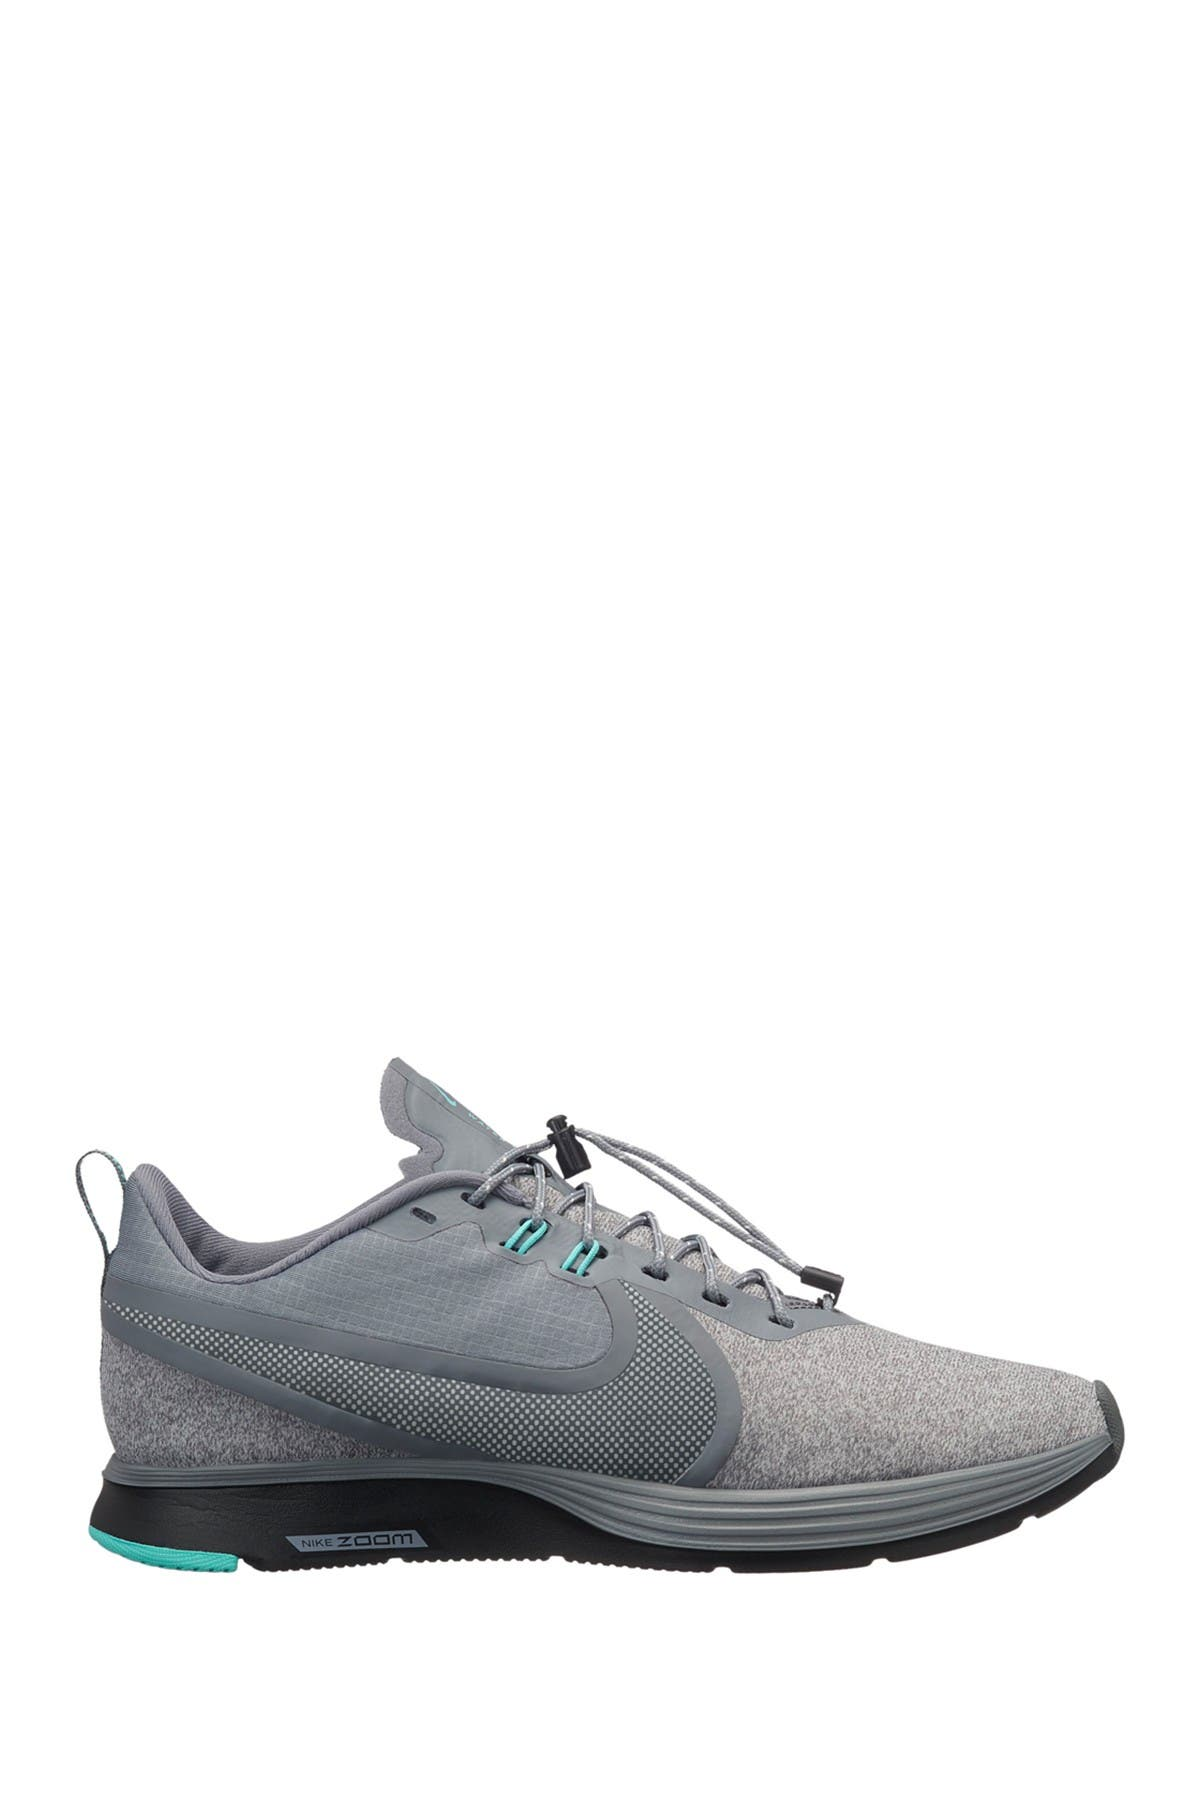 Final Sinceridad Vergonzoso  Nike | Zoom Strike 2 Shield Running Shoe | Nordstrom Rack